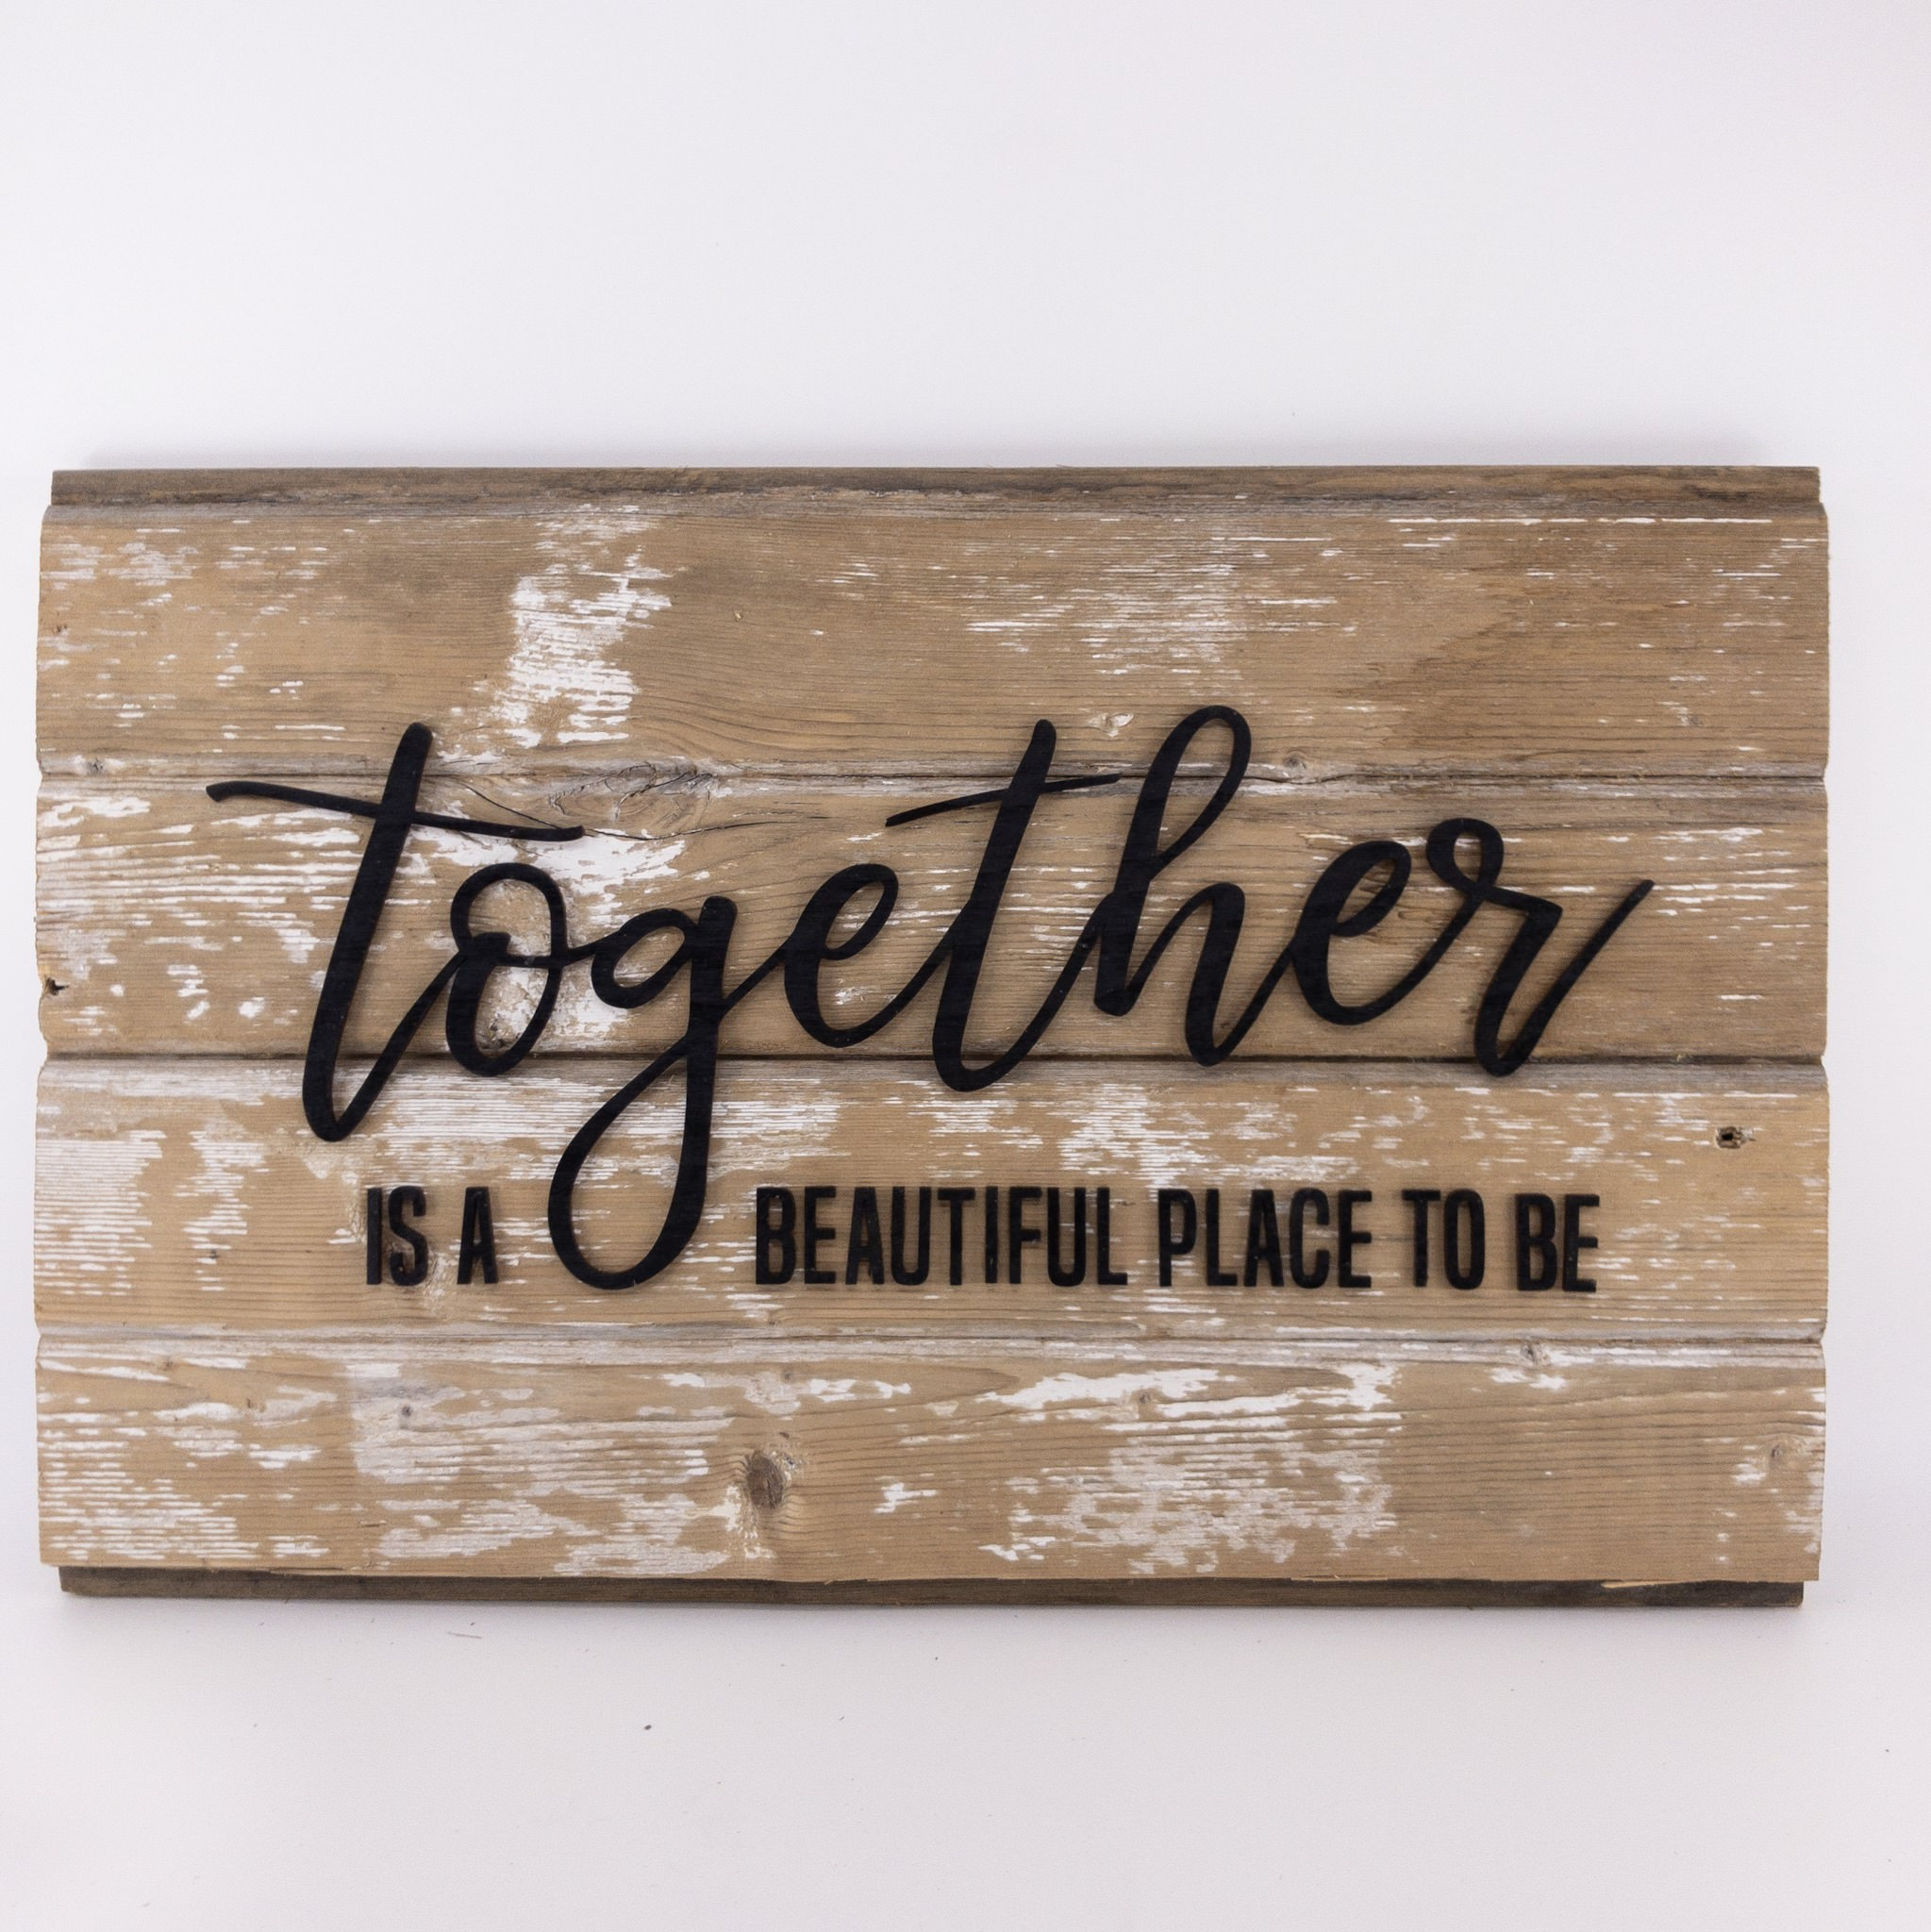 Shop Together Is A Beautiful Place To Be Here